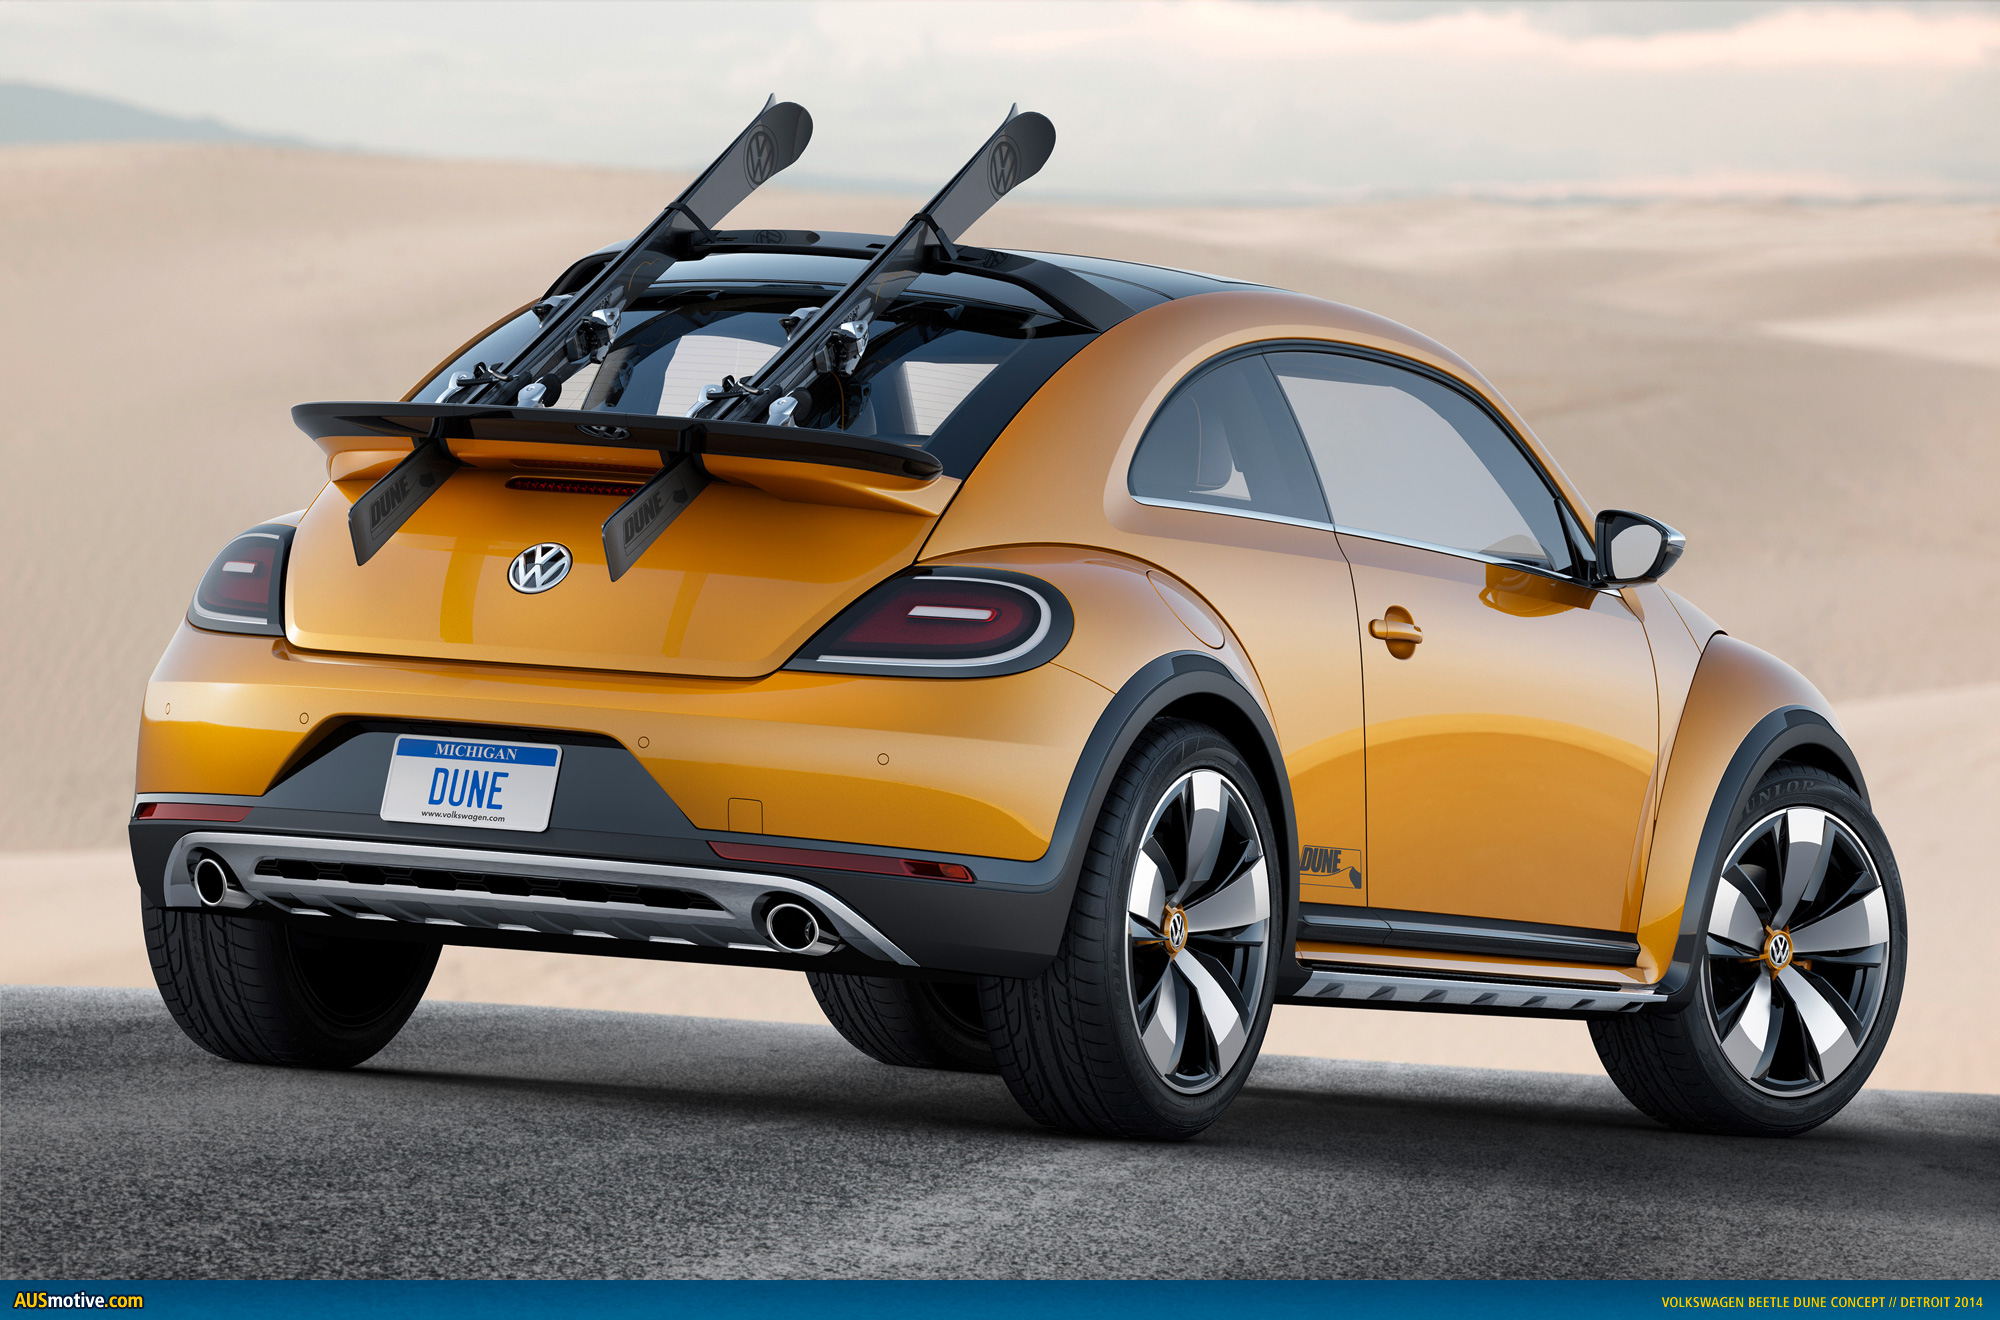 detroit 2014 volkswagen beetle dune concept. Black Bedroom Furniture Sets. Home Design Ideas